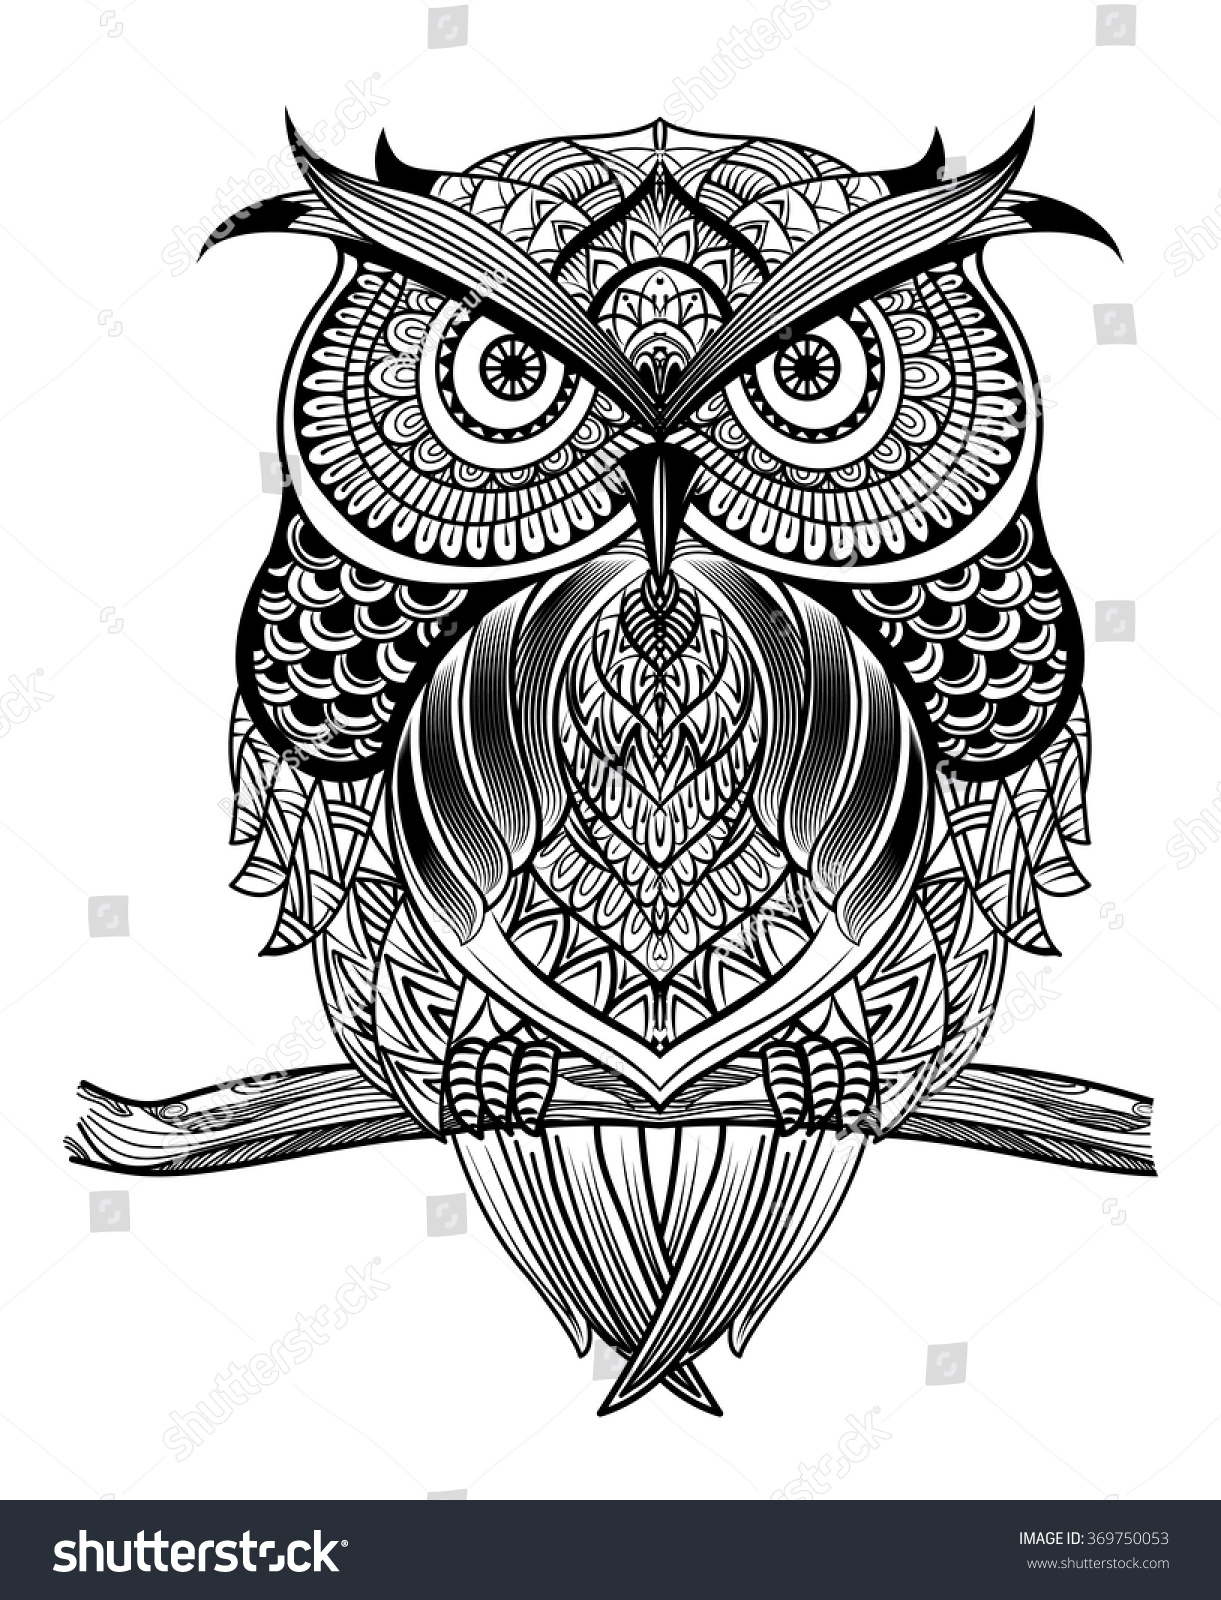 vector hand drawn owl sitting on stock vector 369750053 shutterstock